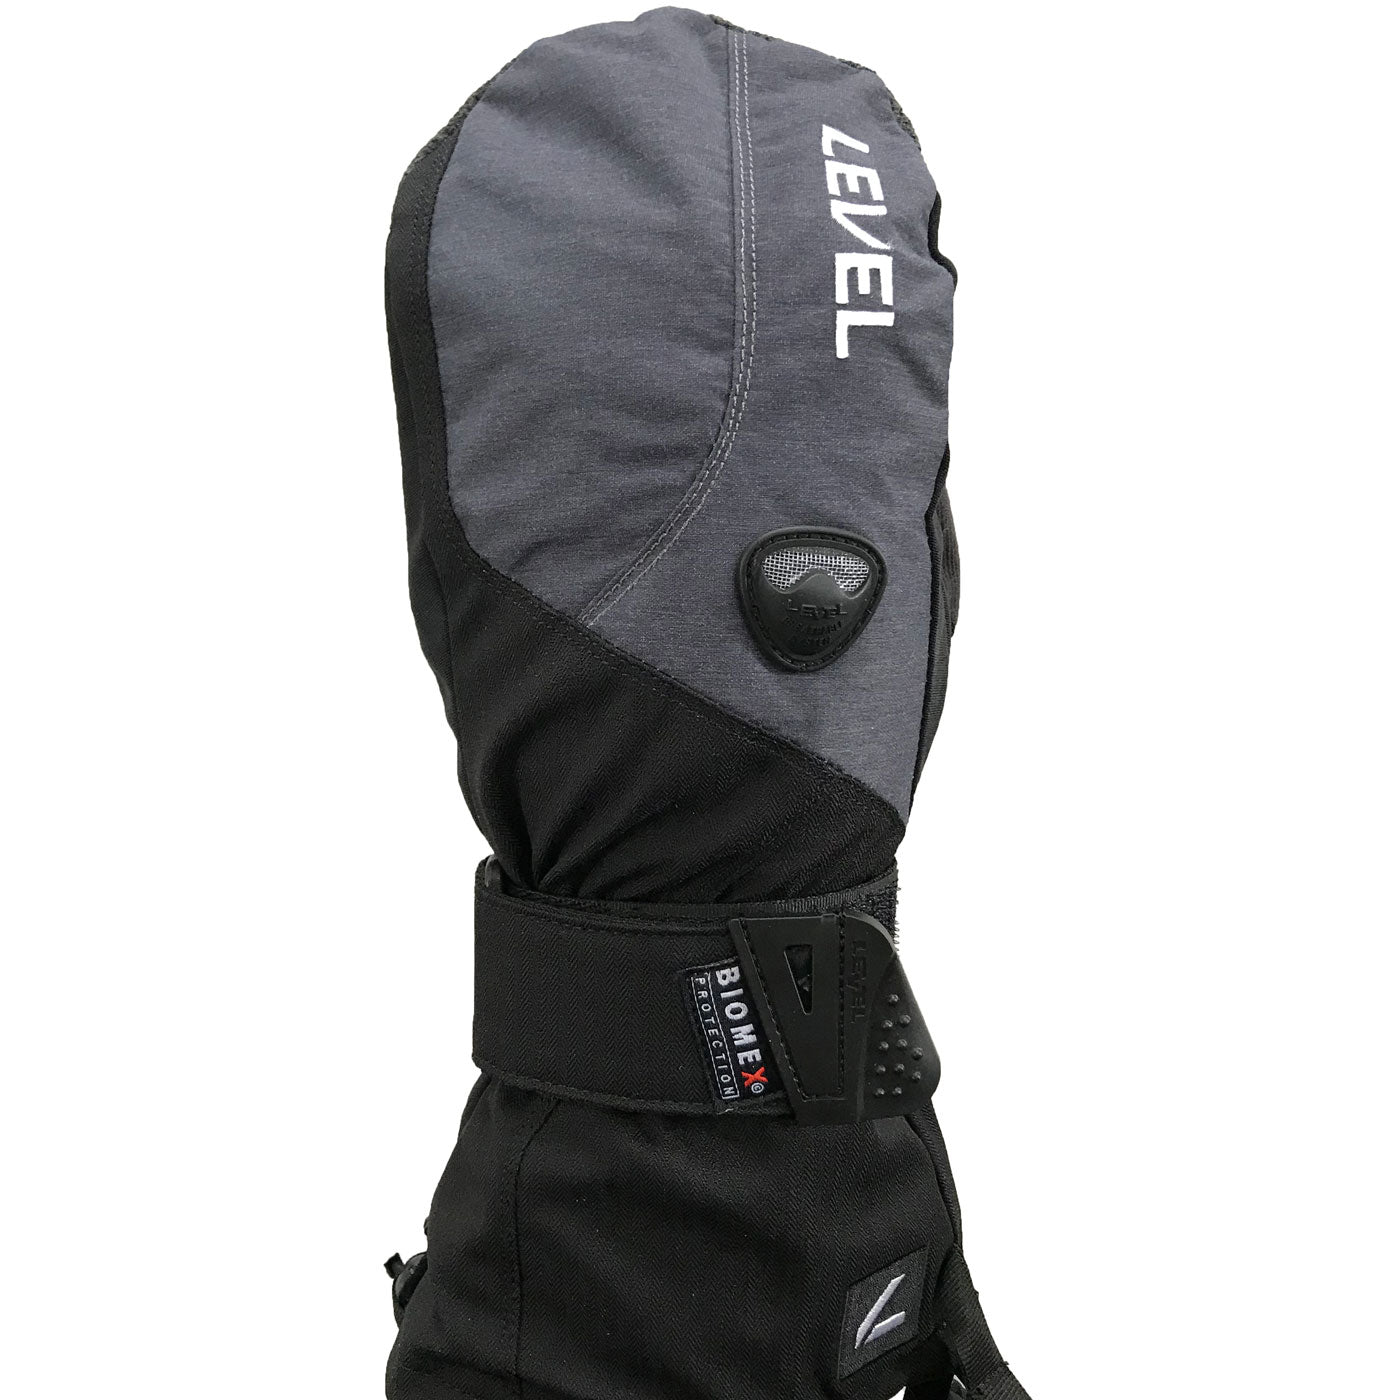 LEVEL Fly Snowboard Mittens with Wrist Guards - Black